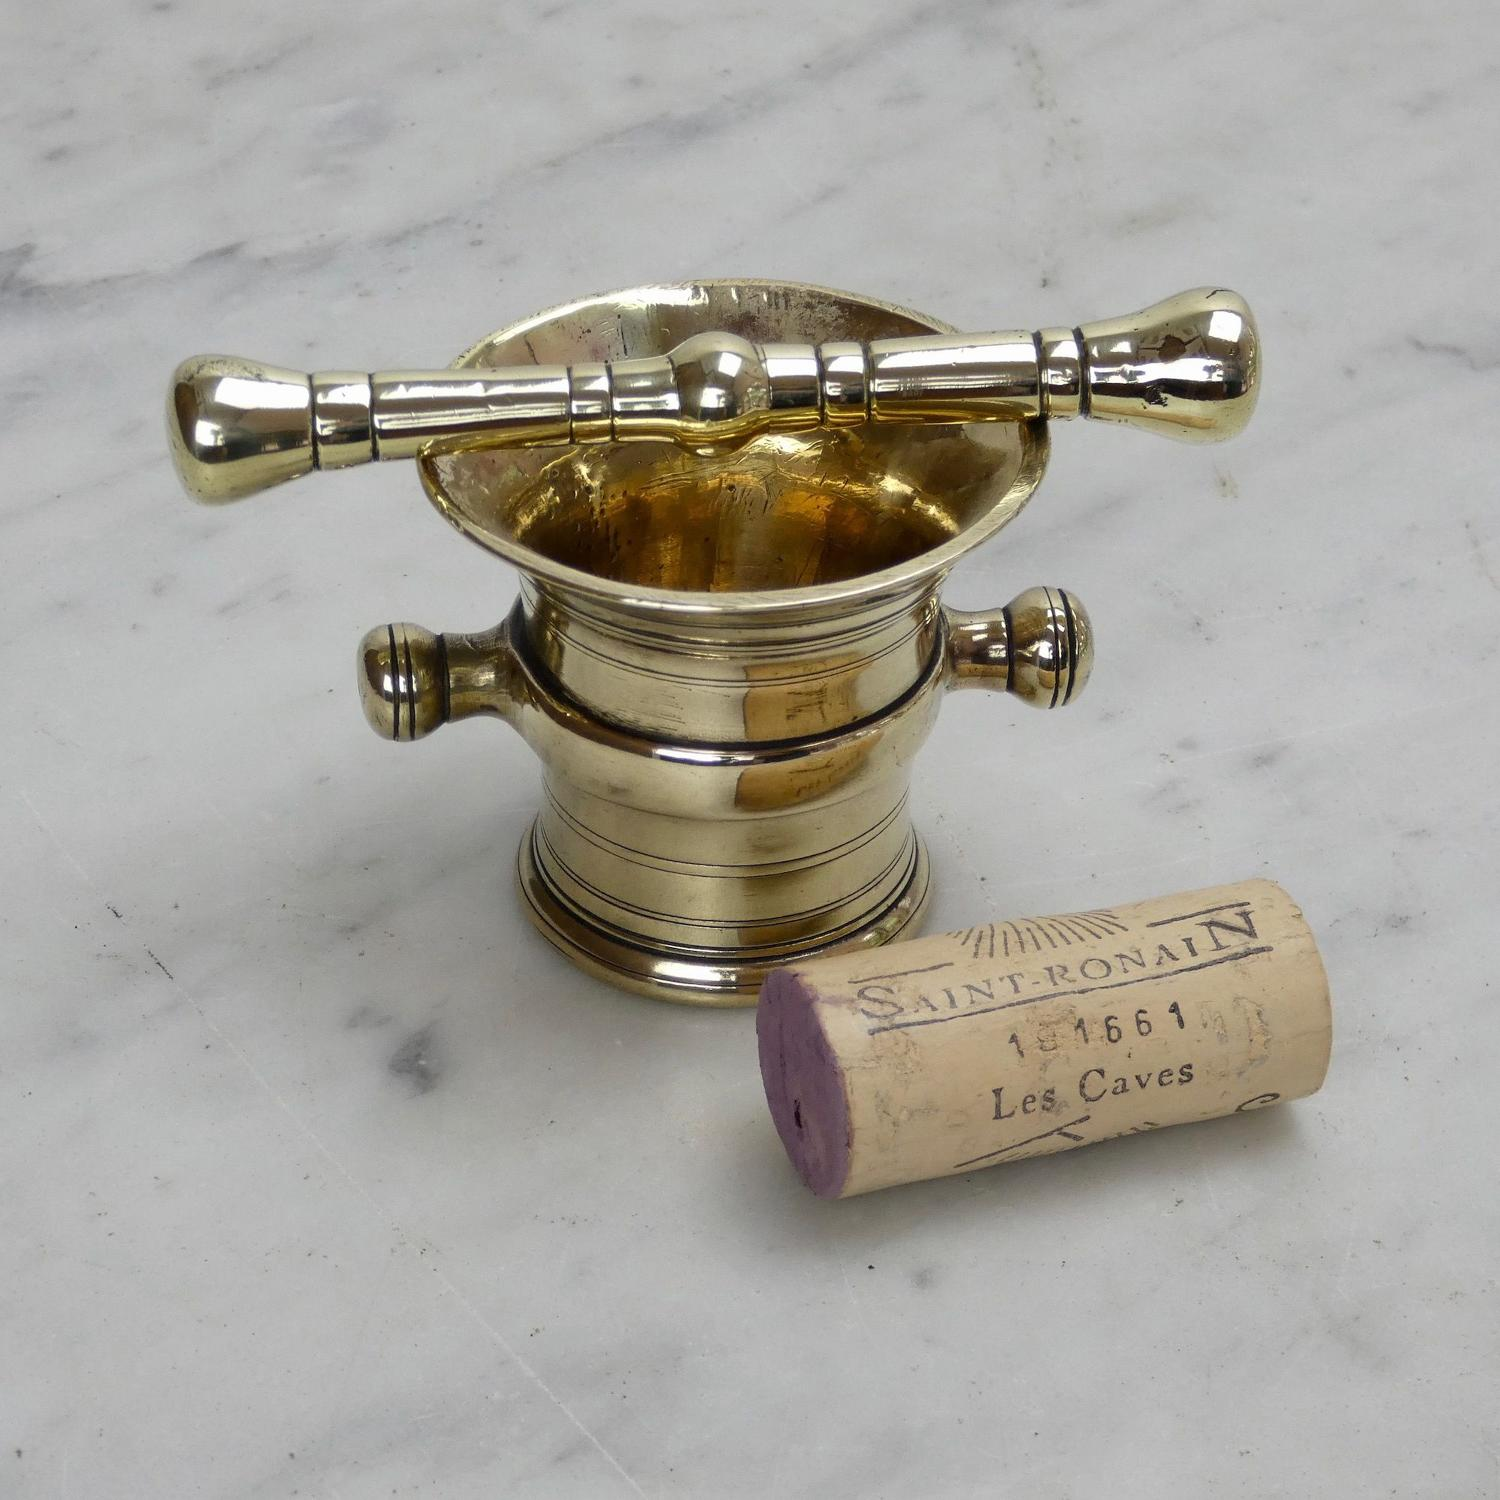 Miniature, brass mortar and pestle